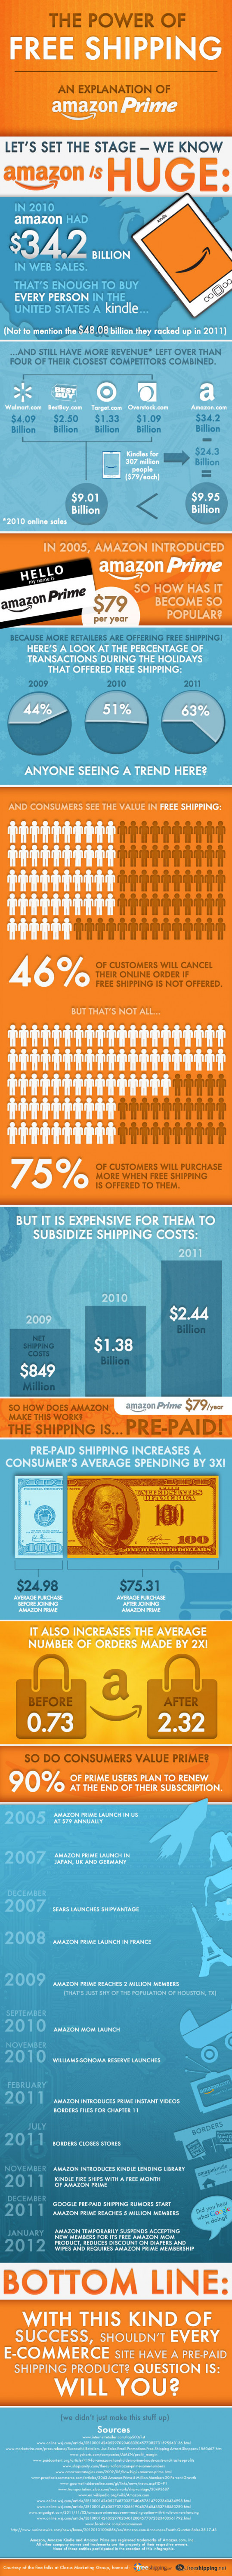 The Power of Free Shipping - Amazon Prime Explained